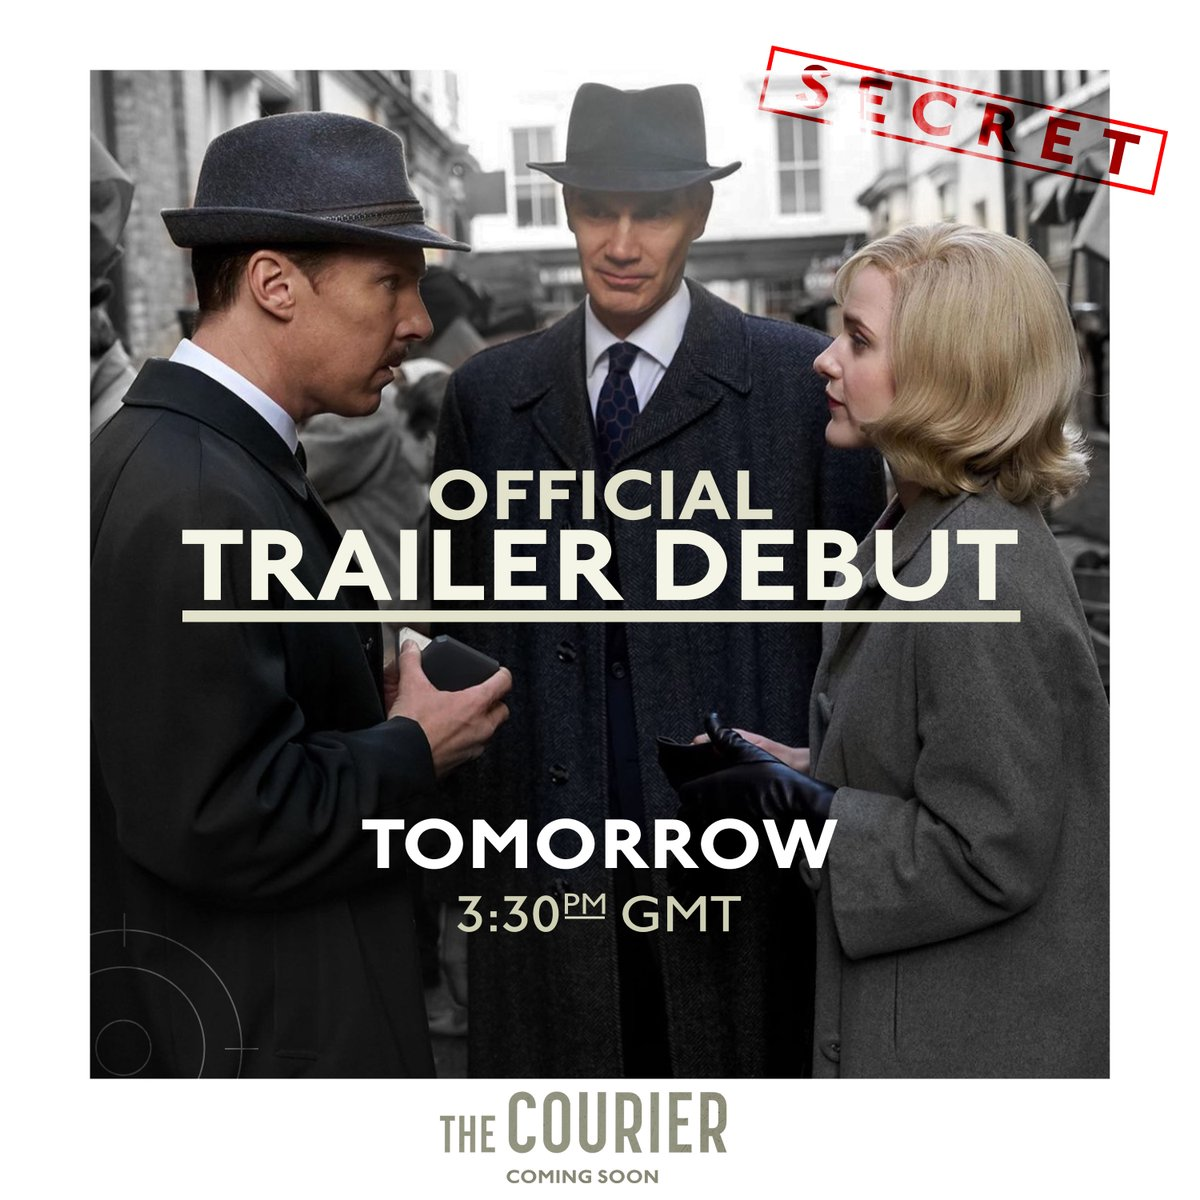 Replying to @LionsgateUK: 🚨 Classified information 🚨 #TheCourierMovie trailer, 3:30pm GMT tomorrow.